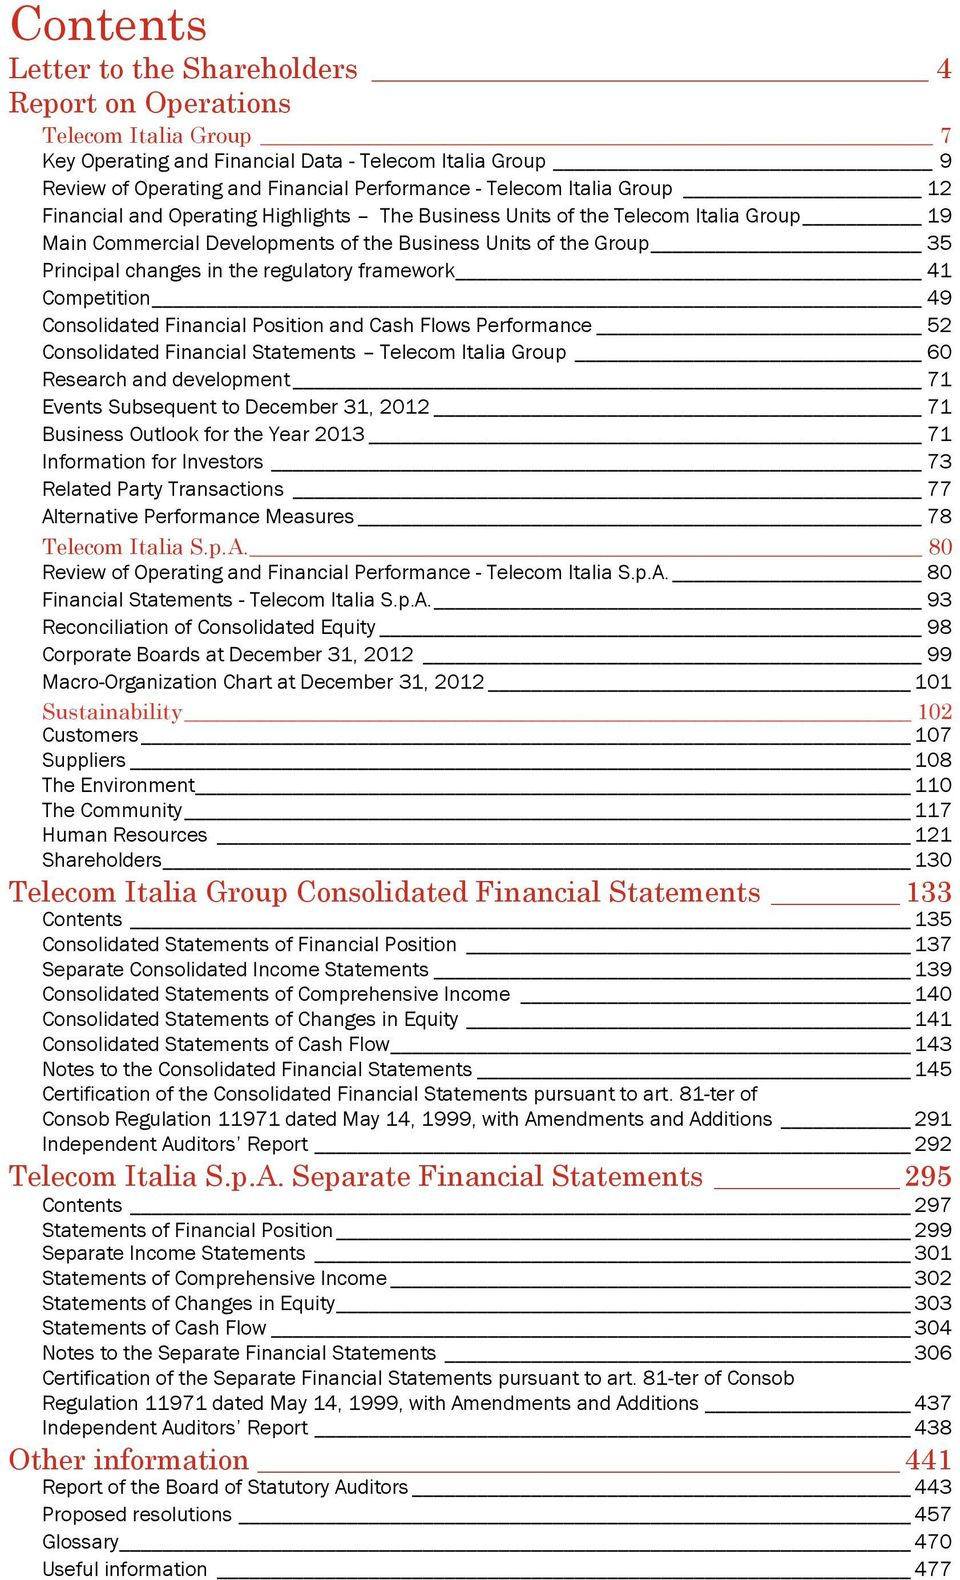 regulatory framework 41 Competition 49 Consolidated Financial Position and Cash Flows Performance 52 Consolidated Financial Statements Telecom Italia Group 60 Research and development 71 Events